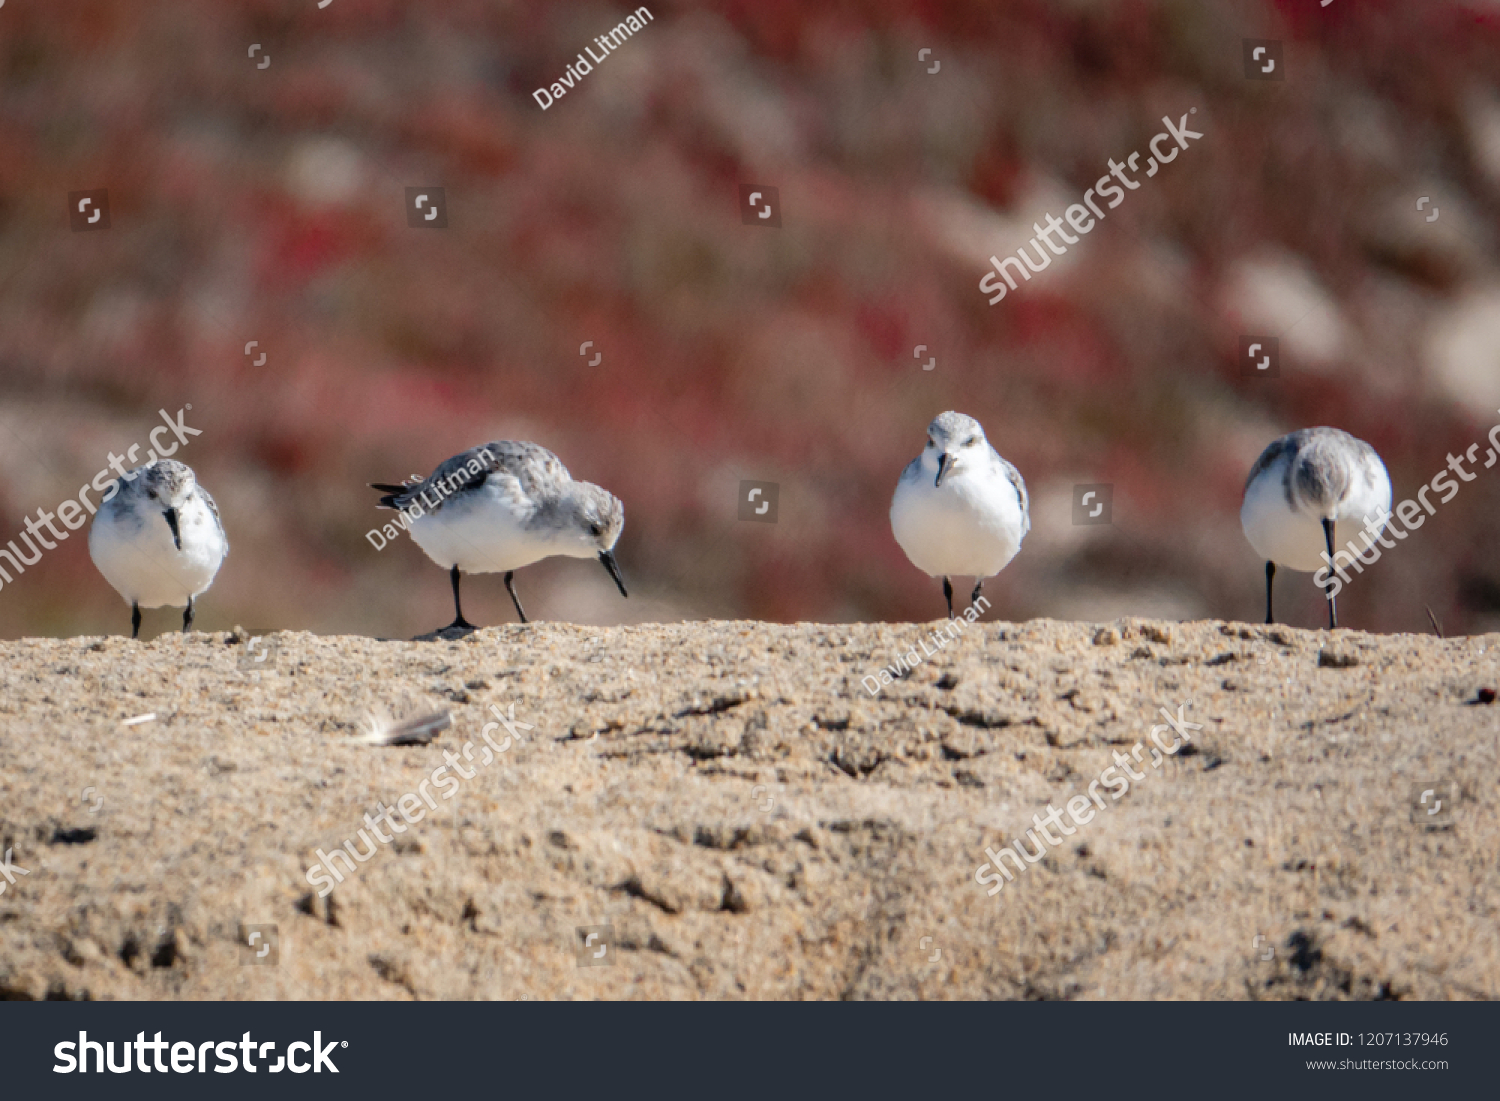 A group of Western Snowy Plovers (Charadrius nivosus) search for food at the beach of Moss Landing, along the Monterey Bay of the Pacific west coast of central California.